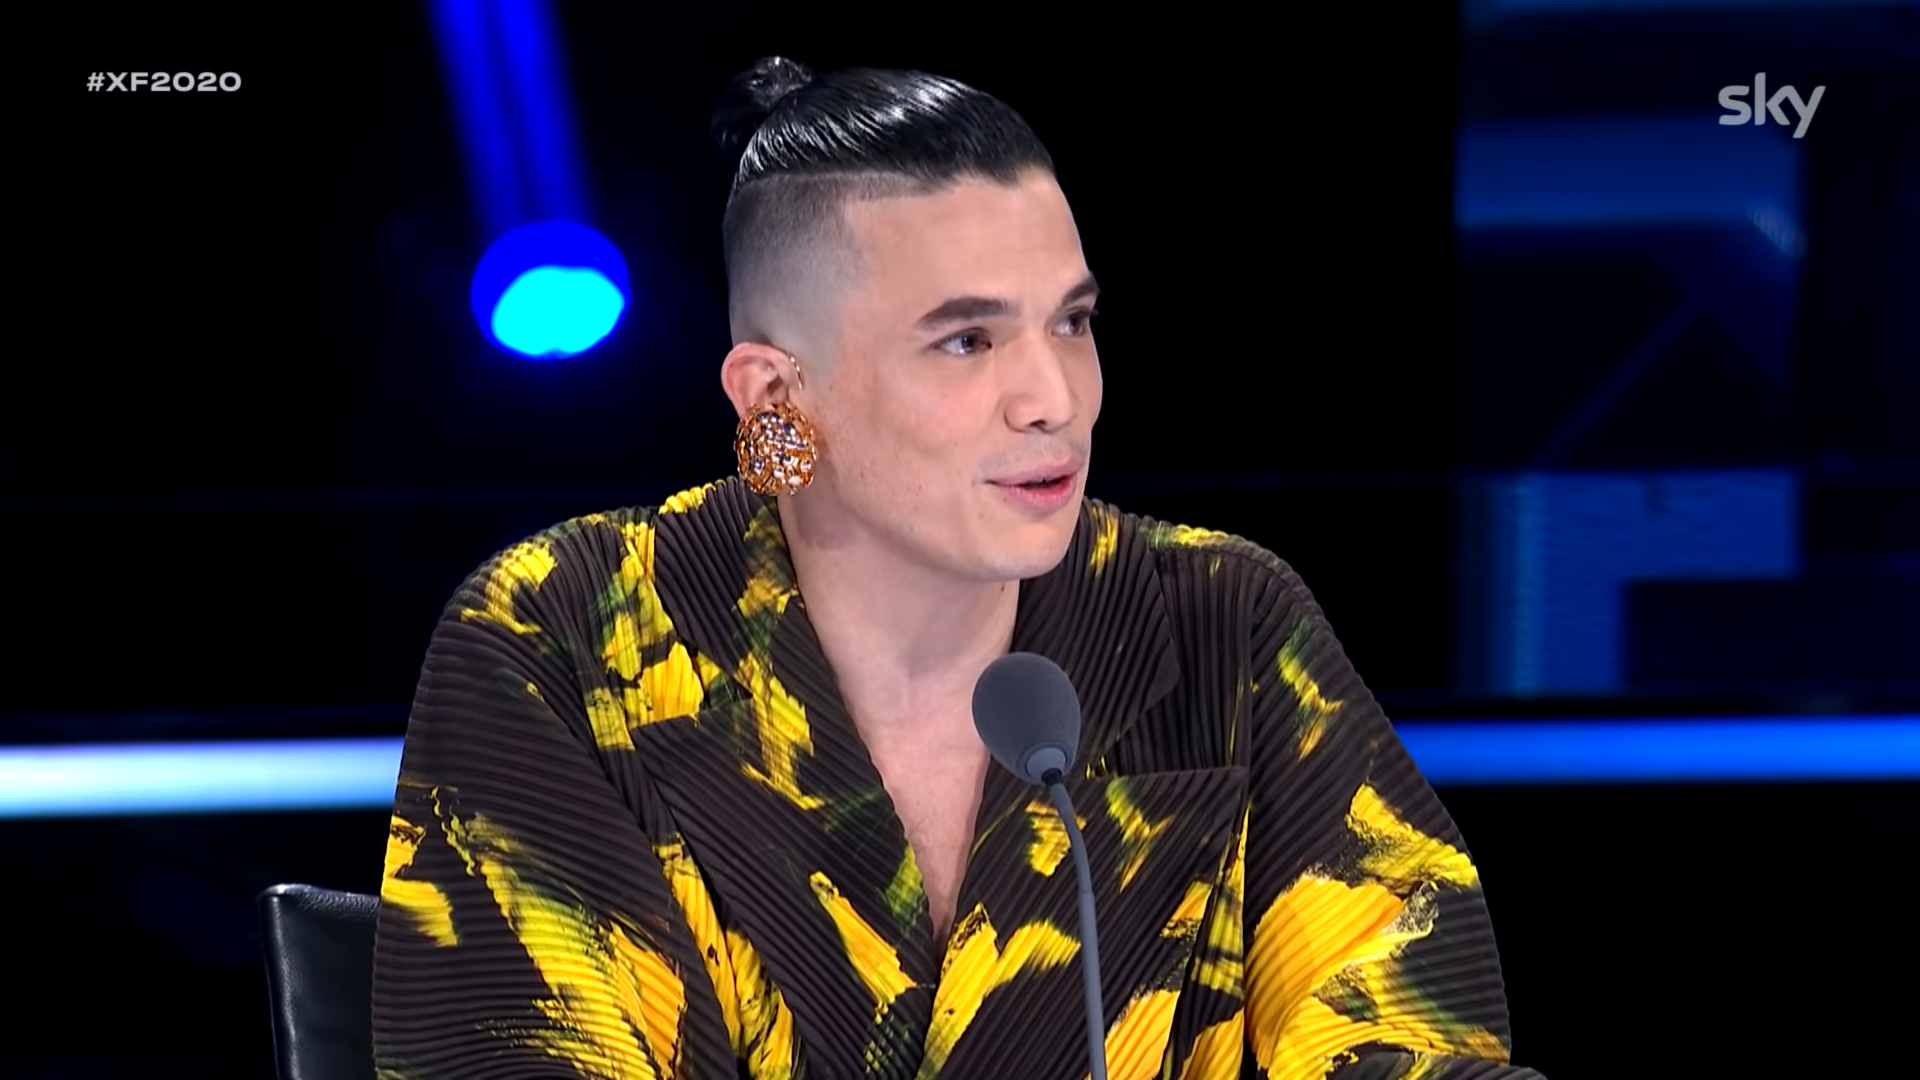 hell raton semifinale x factor 2020